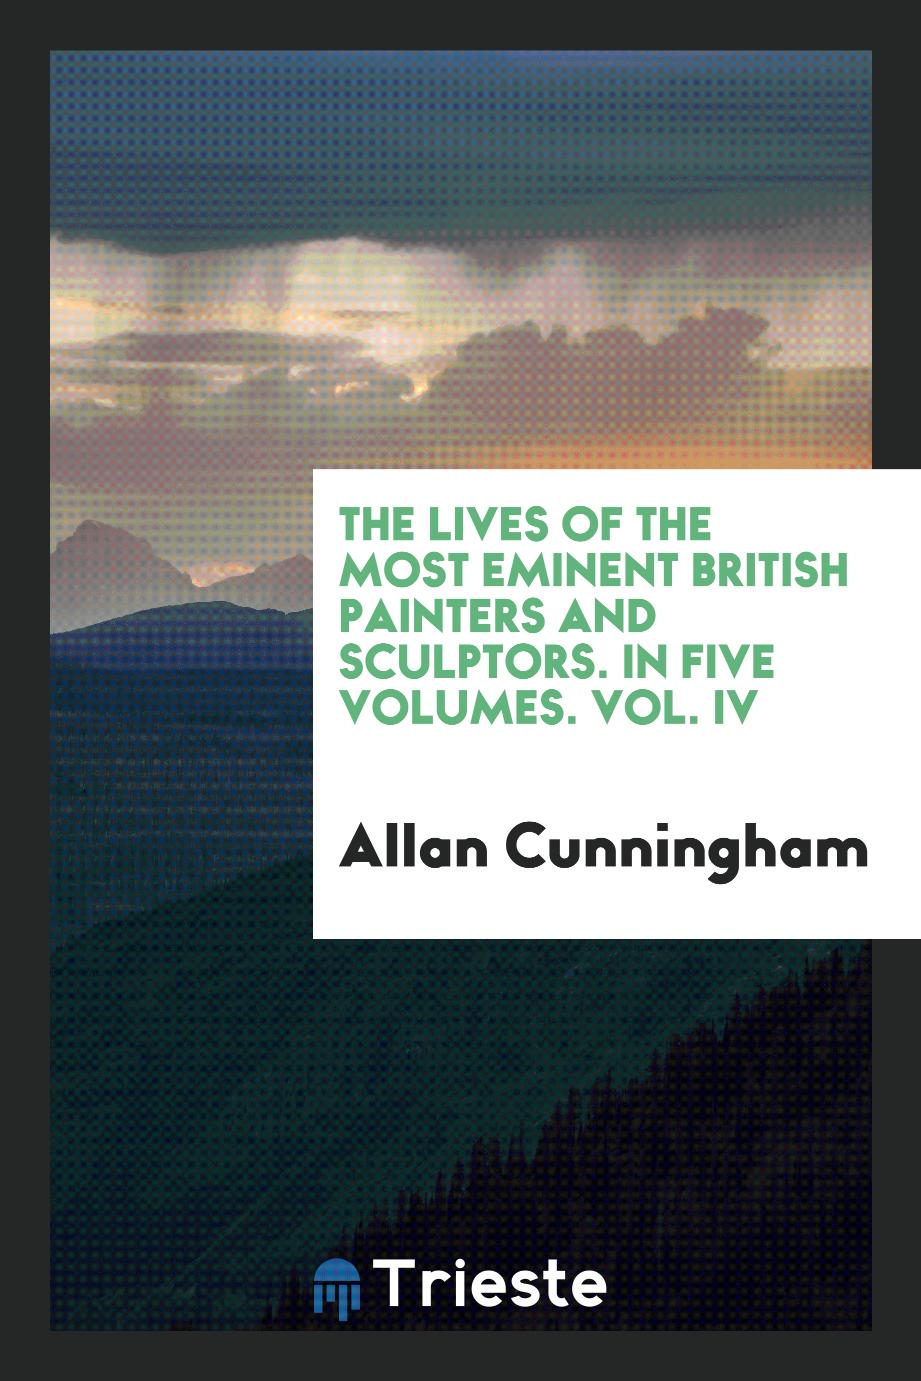 The Lives of the Most Eminent British Painters and Sculptors. In Five Volumes. Vol. IV